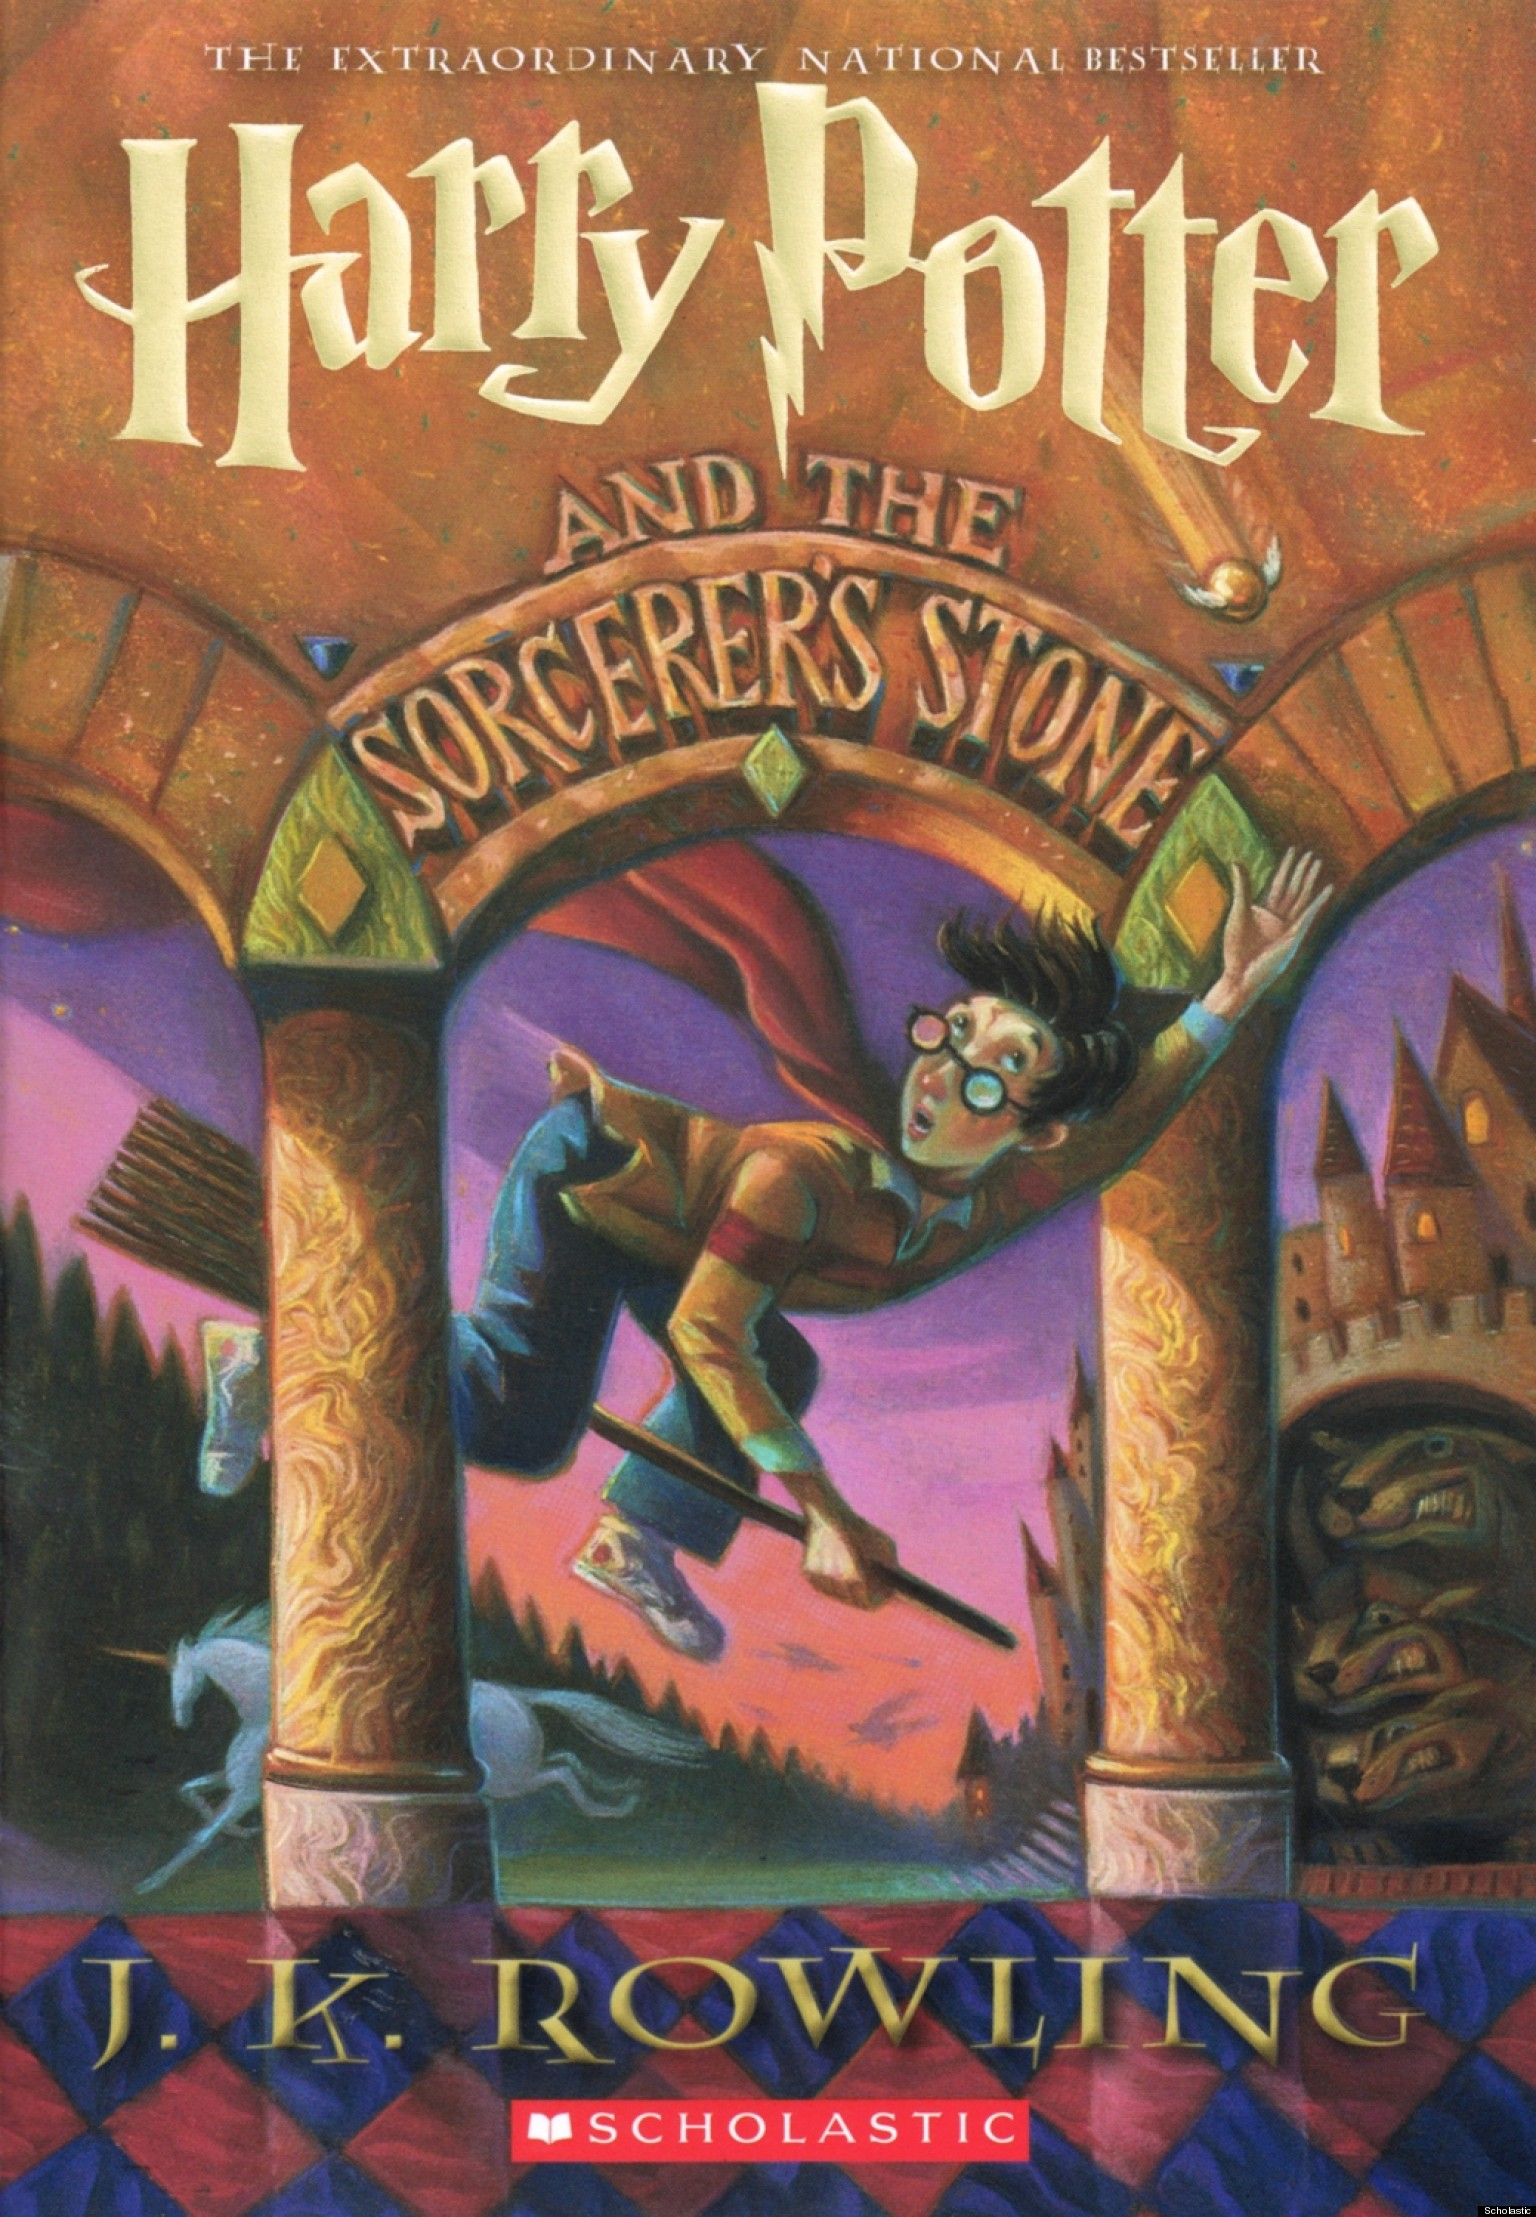 Harry Potter Book Cover Image ~ Scholastic reveals new book cover for harry potter and